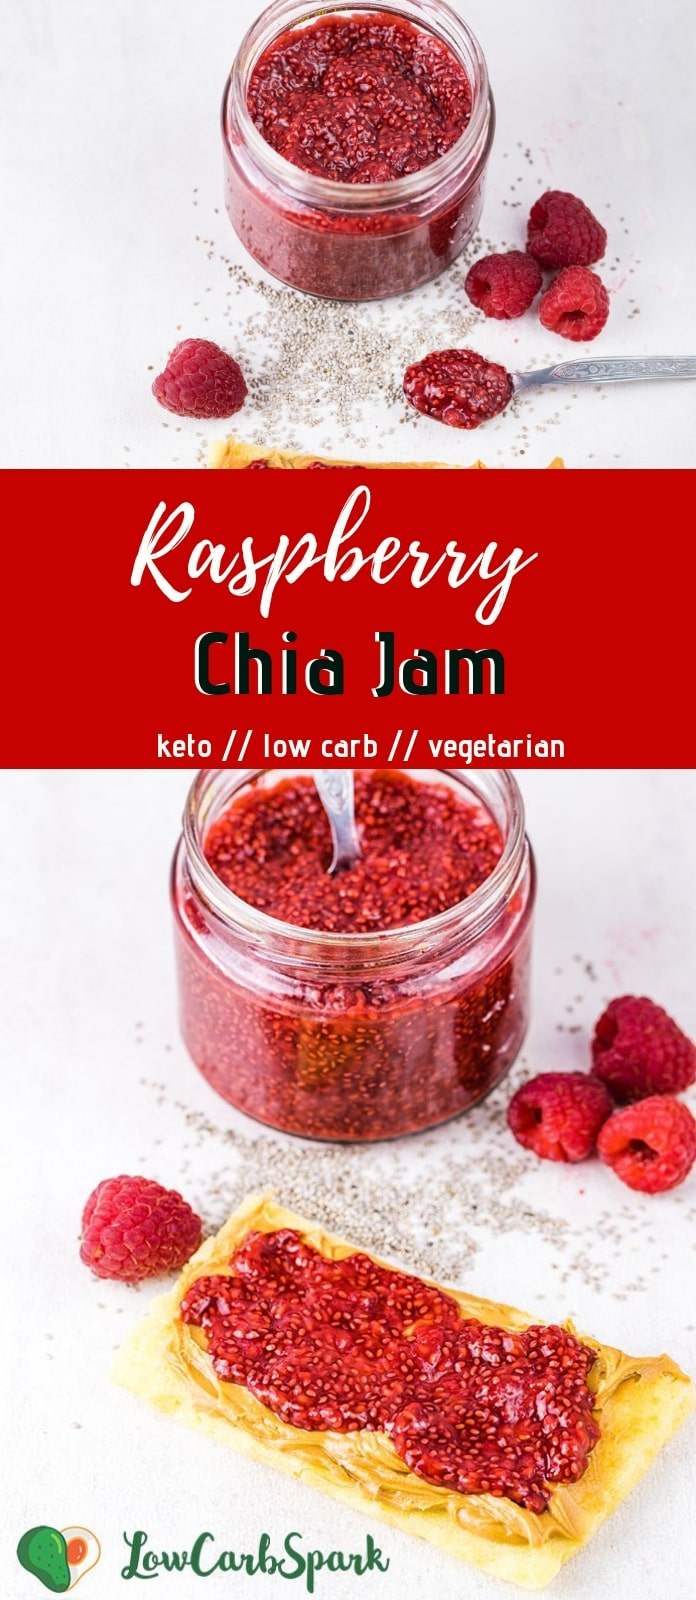 This 4 ingredients Raspberry Chia Seed Jam is ready in 10 minutes, and it\'s absolutely delicious. Try this super easy, healthy, sugar-free and low carb jam that\'s thickened with chia seeds instead of sugar.